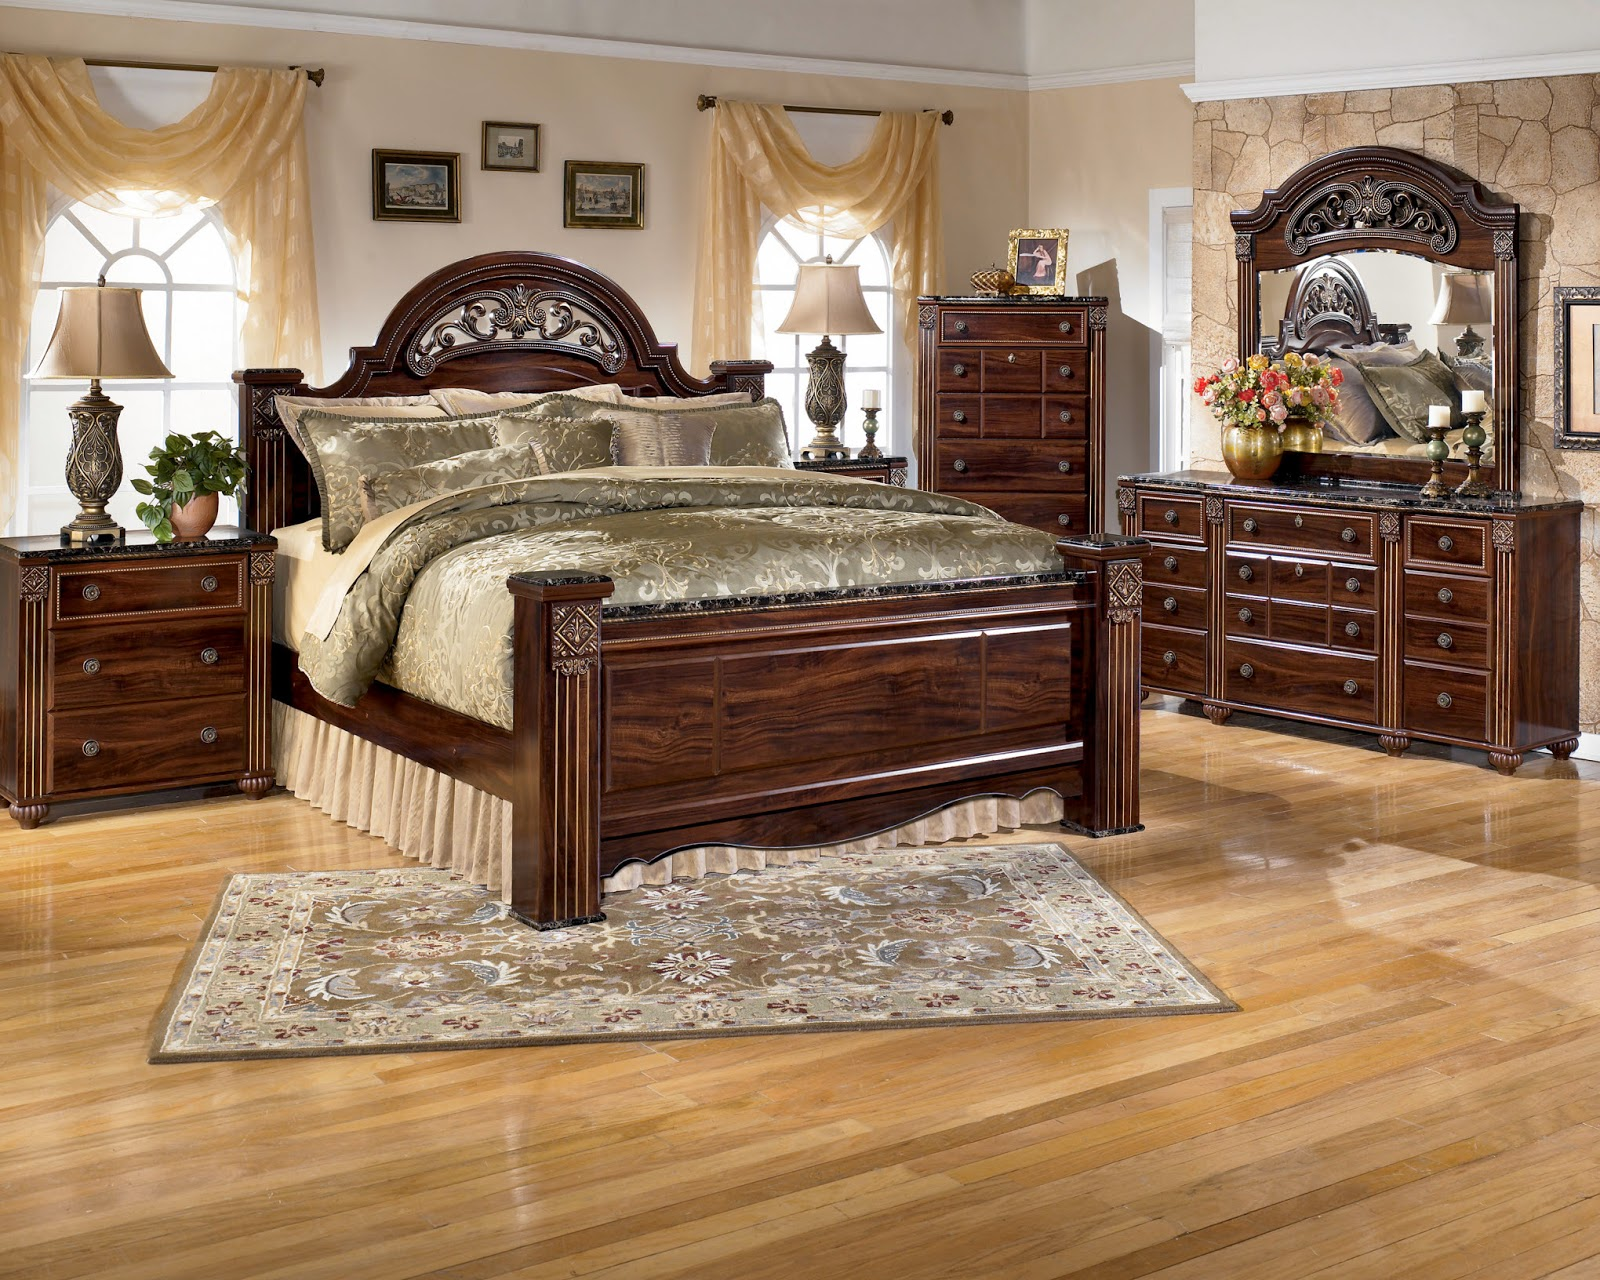 ashley furniture bedroom sets on sale bedroom furniture